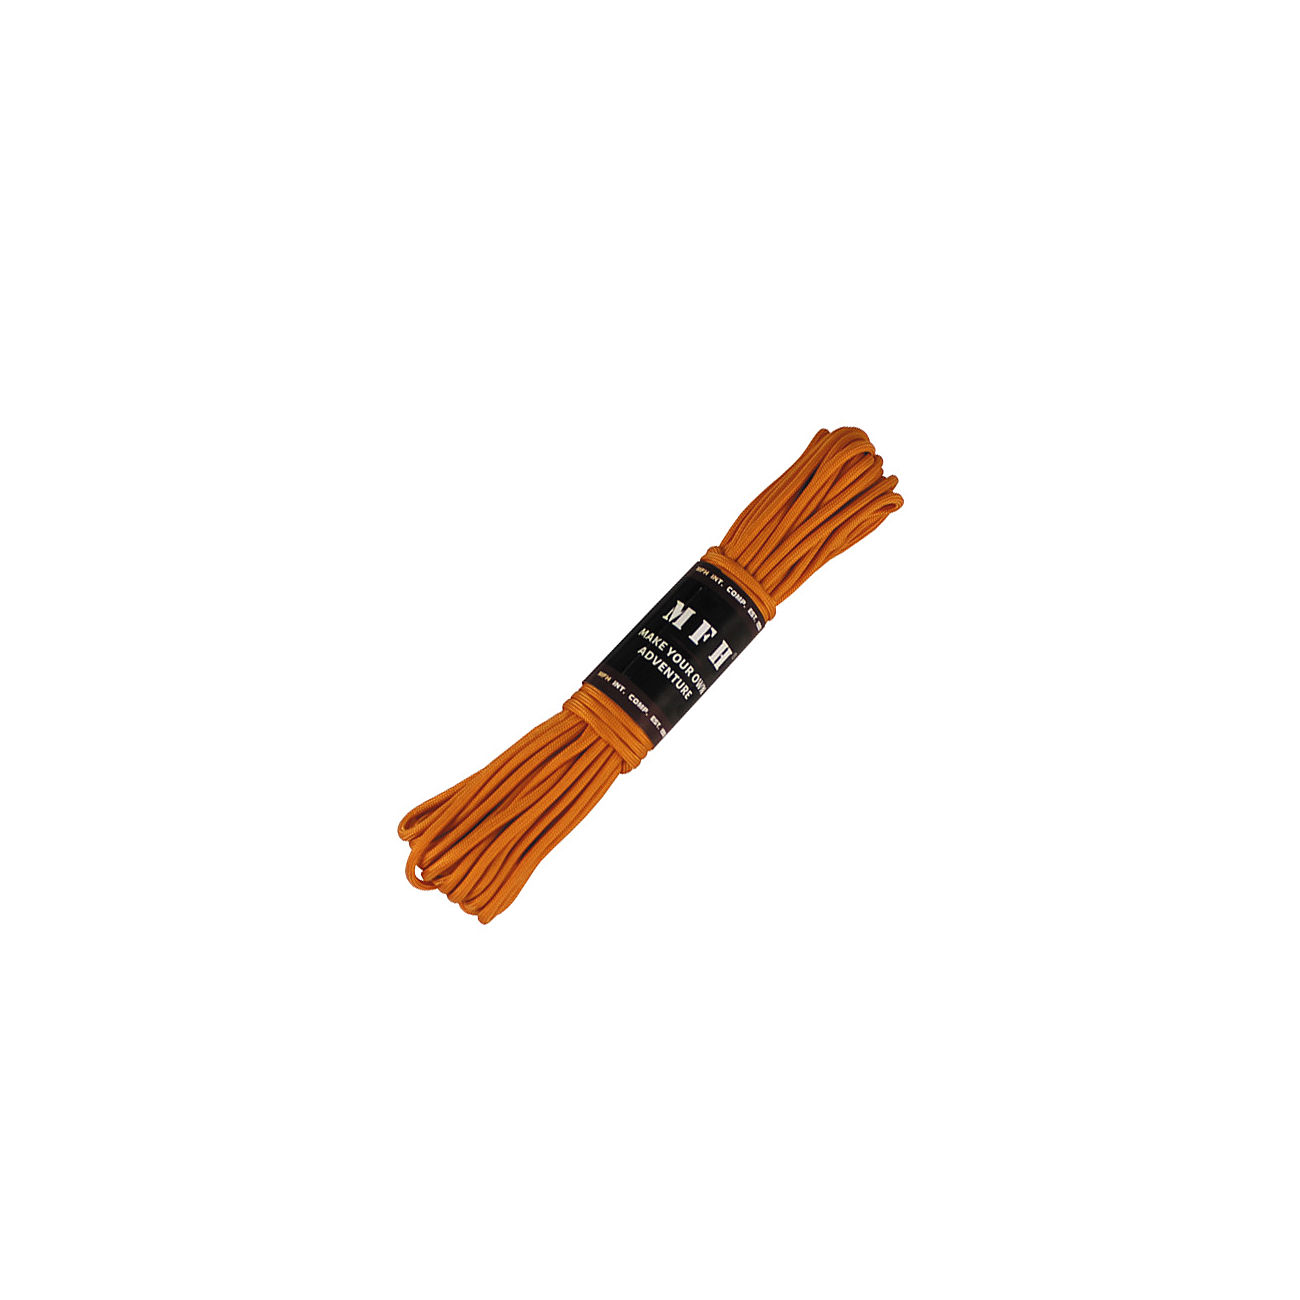 MFH Fallschirmleine 50 FT Nylon orange 0